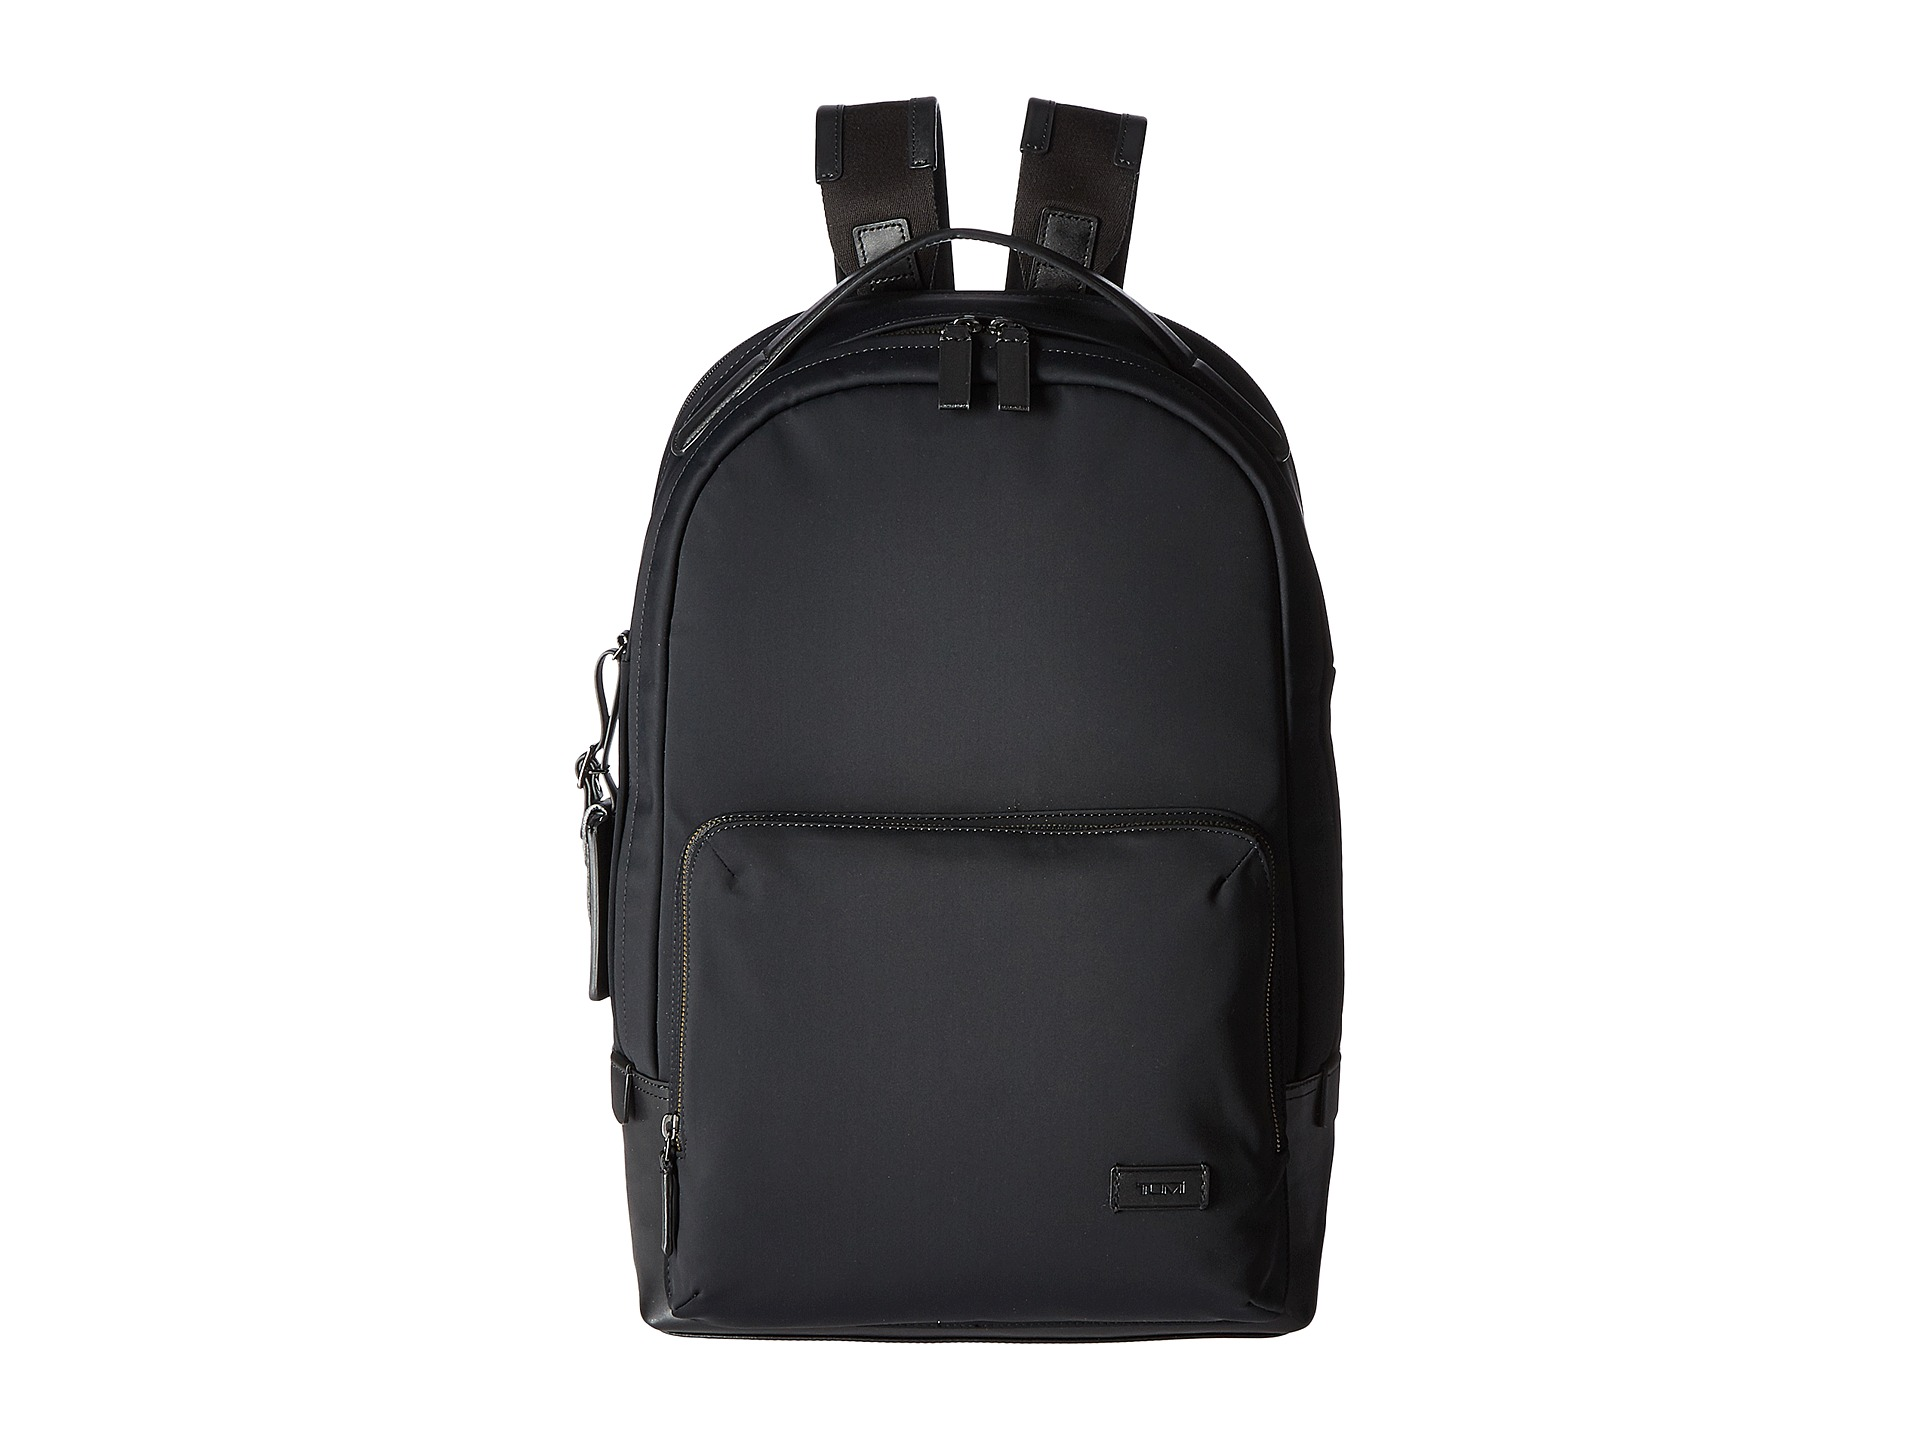 puma ferrari bookbag sale on sale   OFF44% Discounts 75dbe1d2d8c53